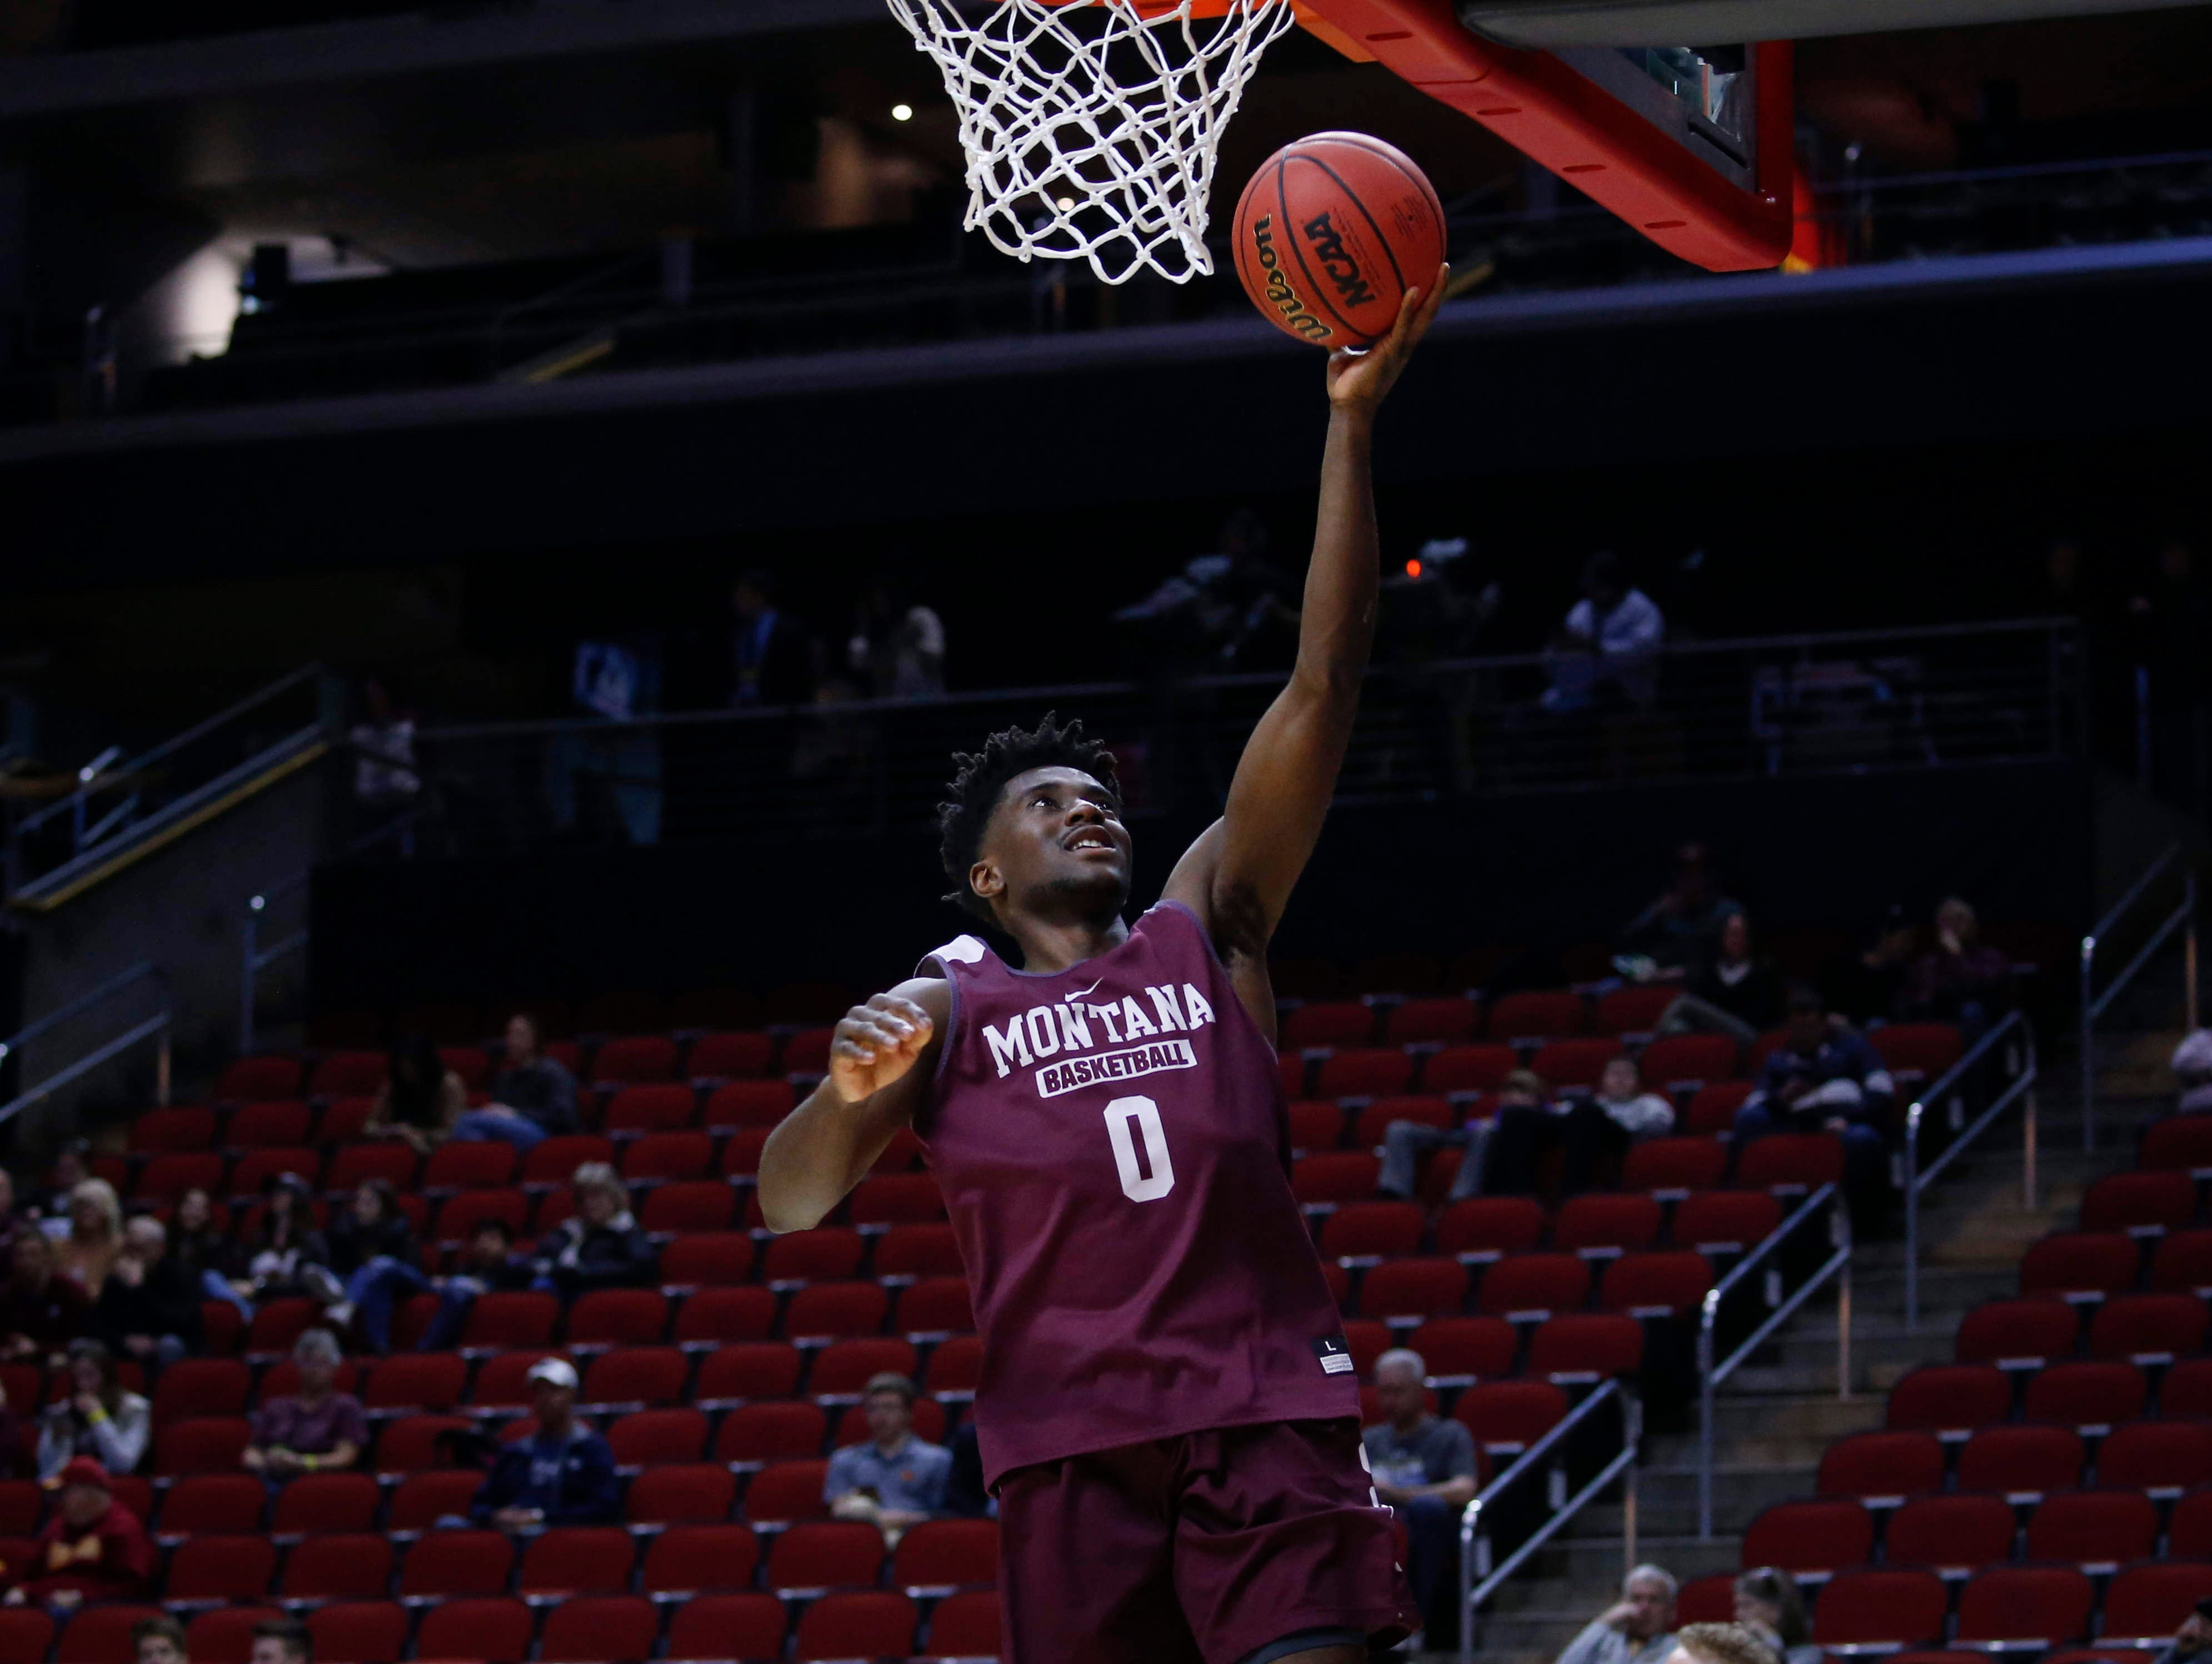 Montana senior Michael Oguine runs the ball up to the net during open practice on Wednesday, March 20, 2019, at Wells Fargo Arena in Des Moines, Iowa.